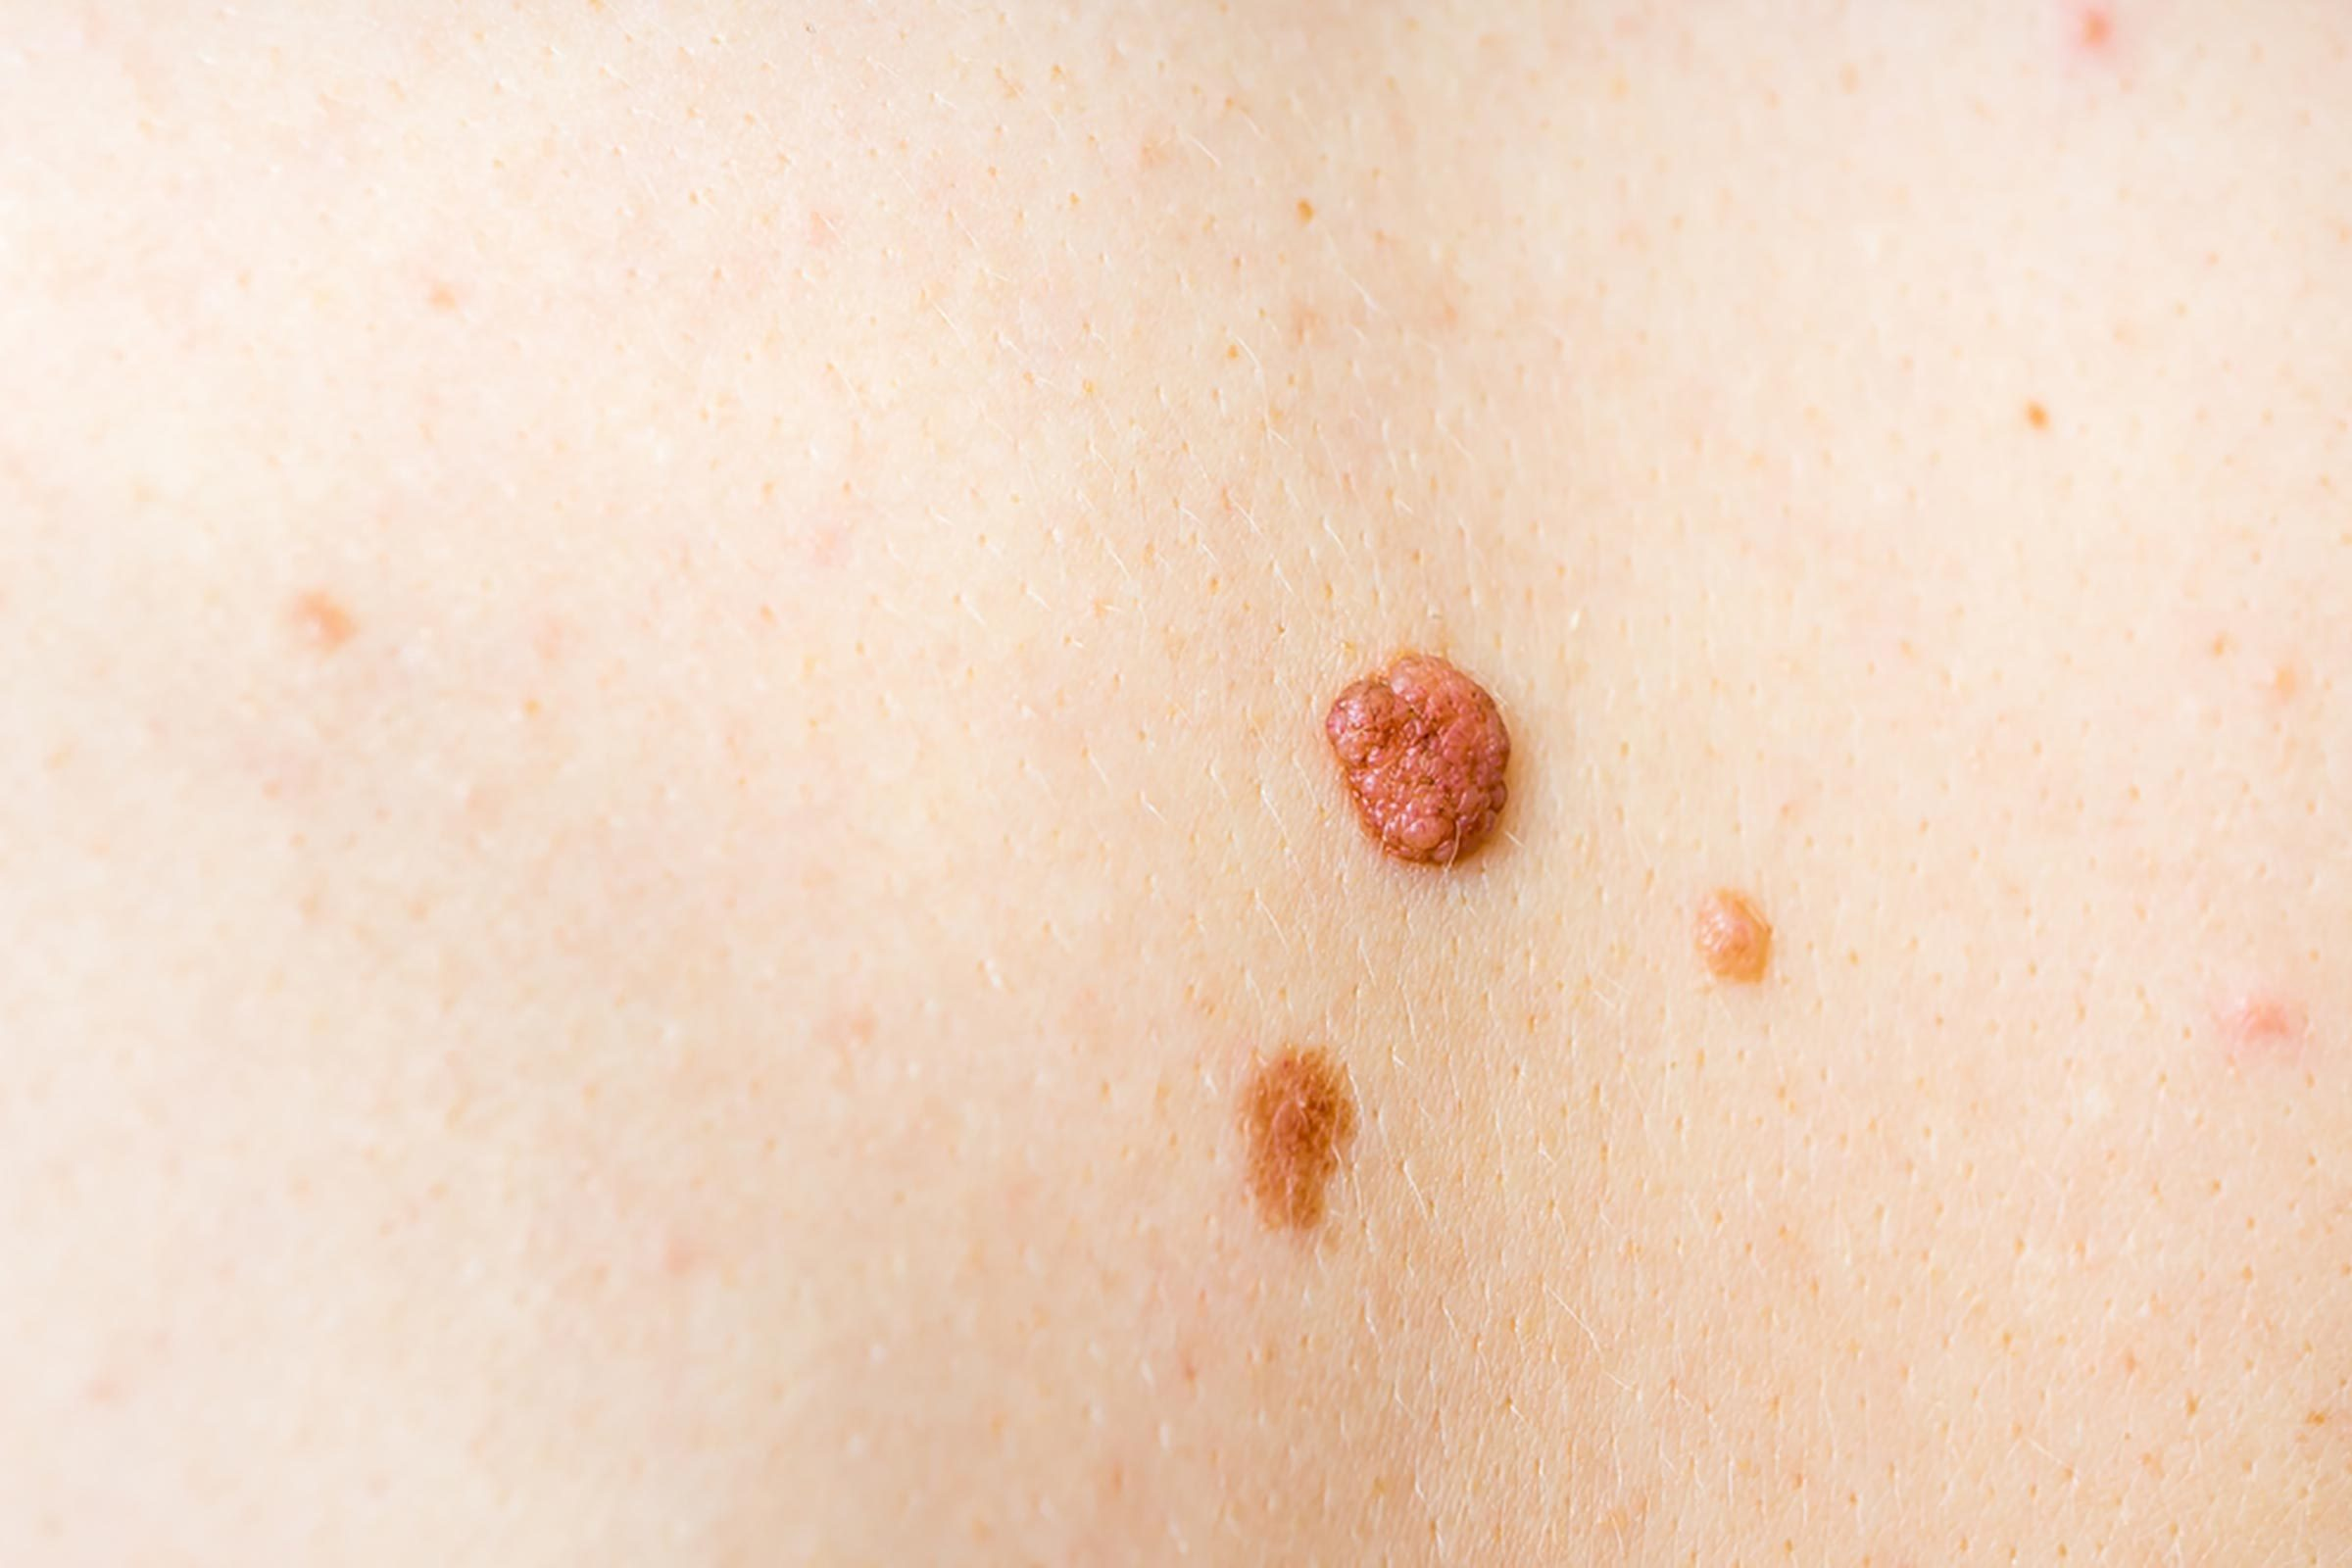 Two skin tags on a person's skin.